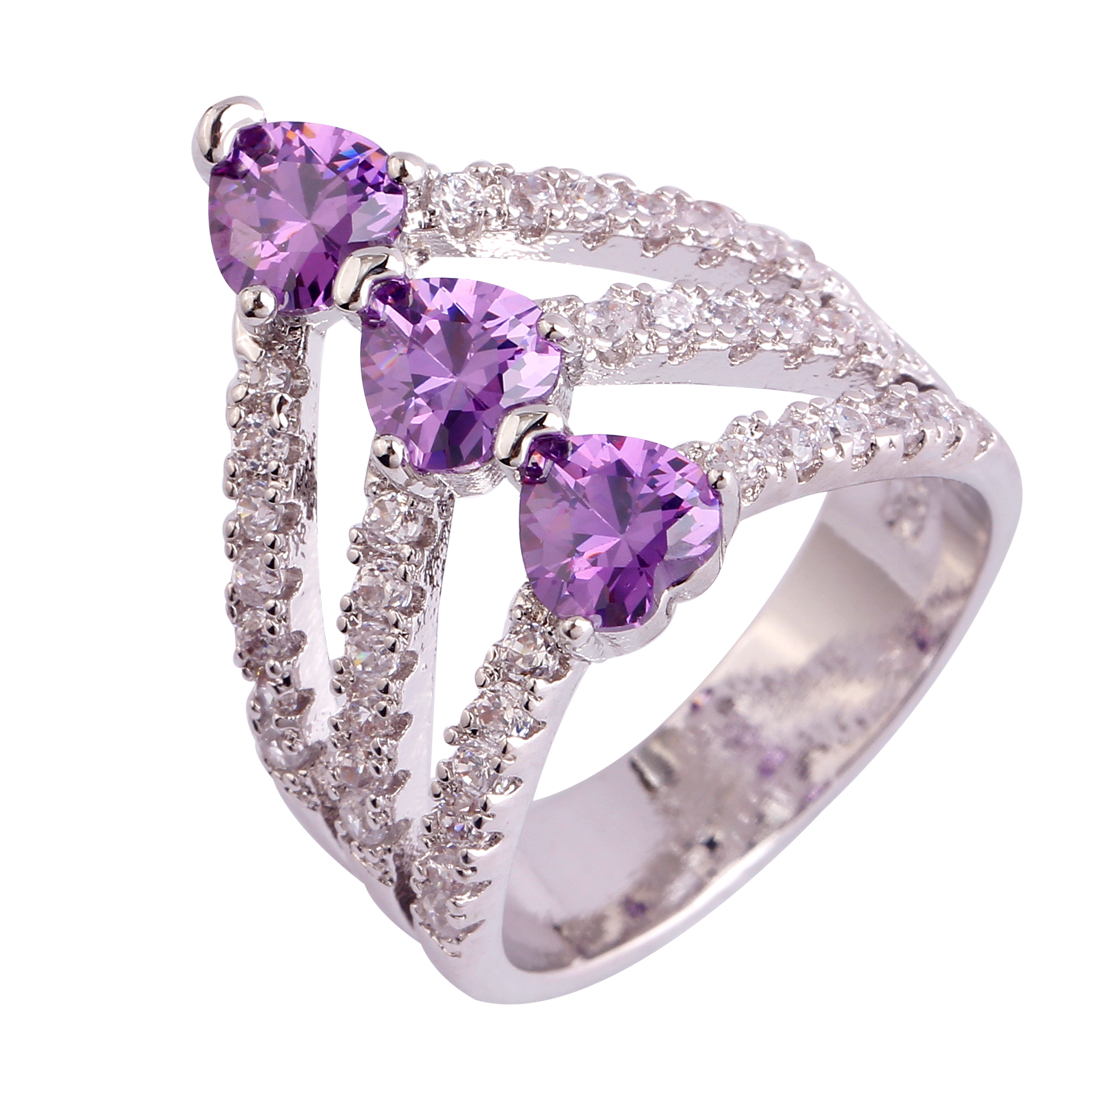 Wholesale Fashion Amethyst 18K White Gold Plated Silver Ring Size 6 7 8 9 10 11 Women Rings Gems Jewelry Free Shipping